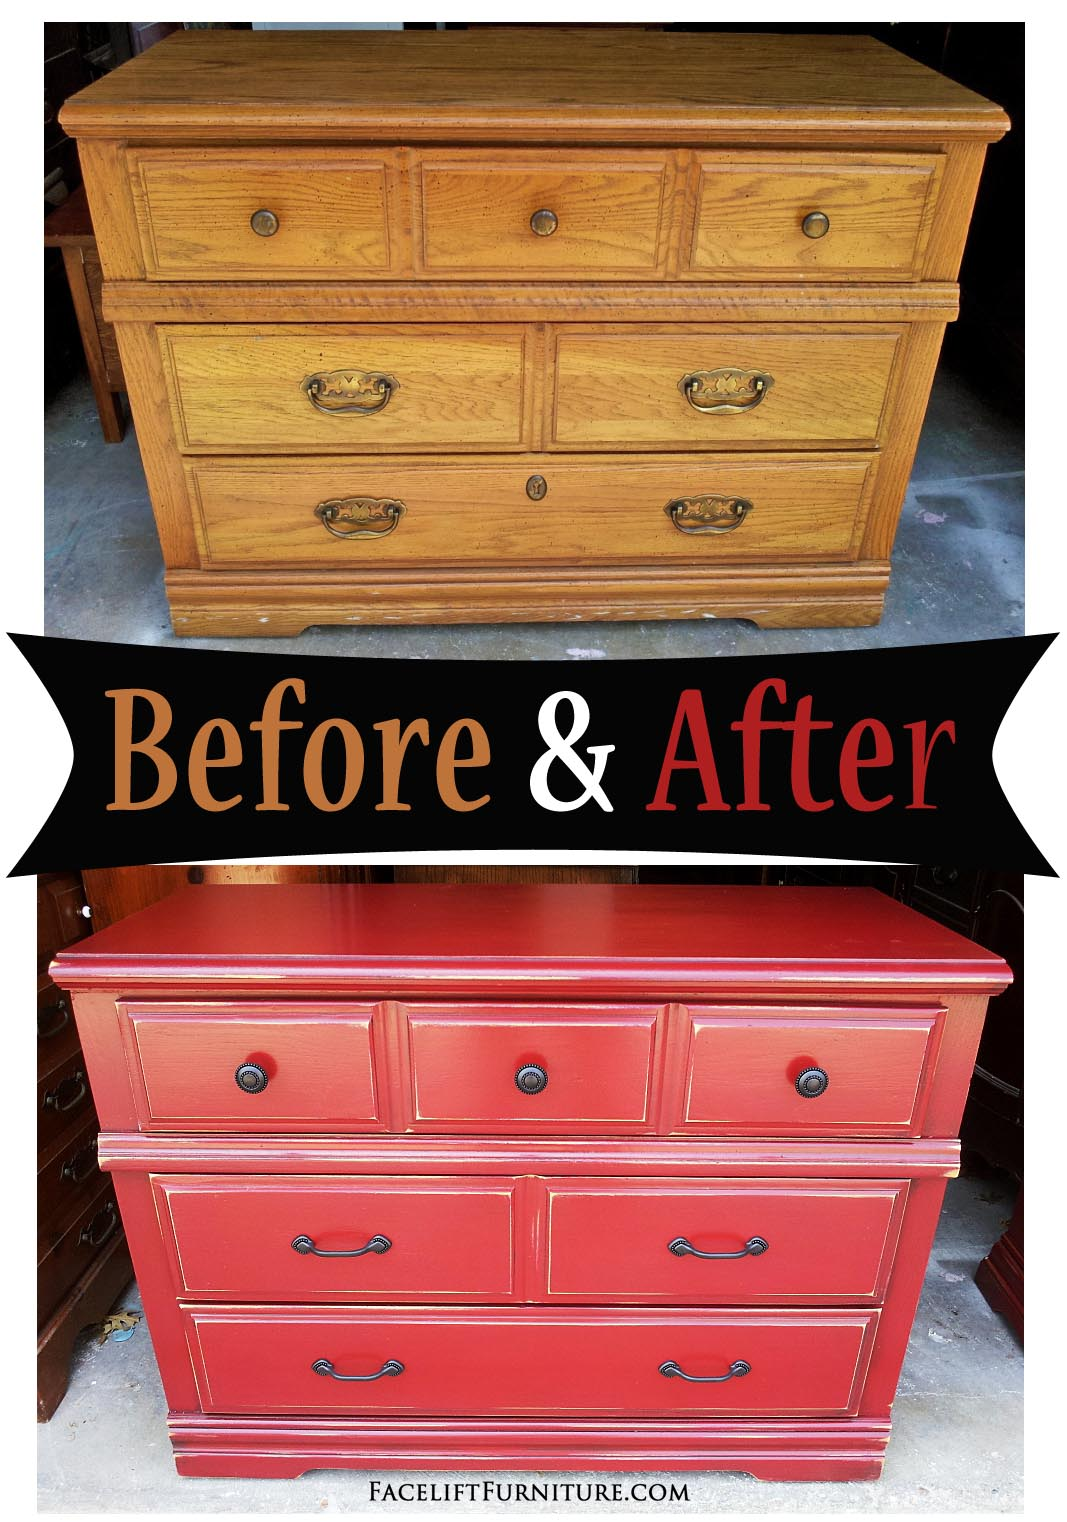 This Oak Dresser Was Given A Whole New Look With Paint, Glaze And  Distressing.